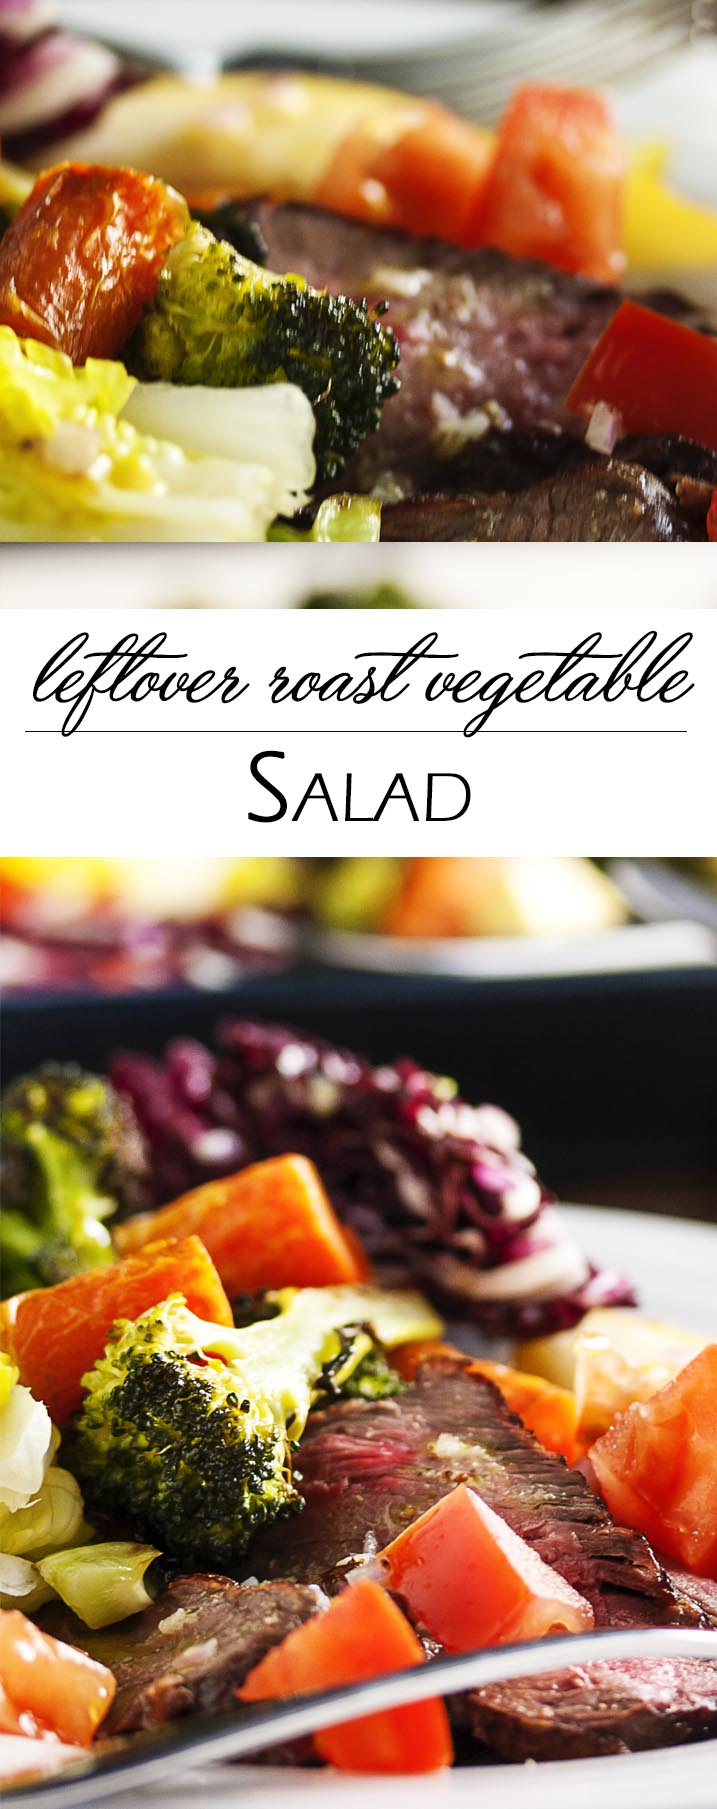 Leftover Roast Vegetable Salad with Shallot Vinaigrette - This salad is a tasty and easy way to use leftover roast vegetables and roast meats along with whatever salad fixings you have in the fridge. | justalittlebitofbacon.com